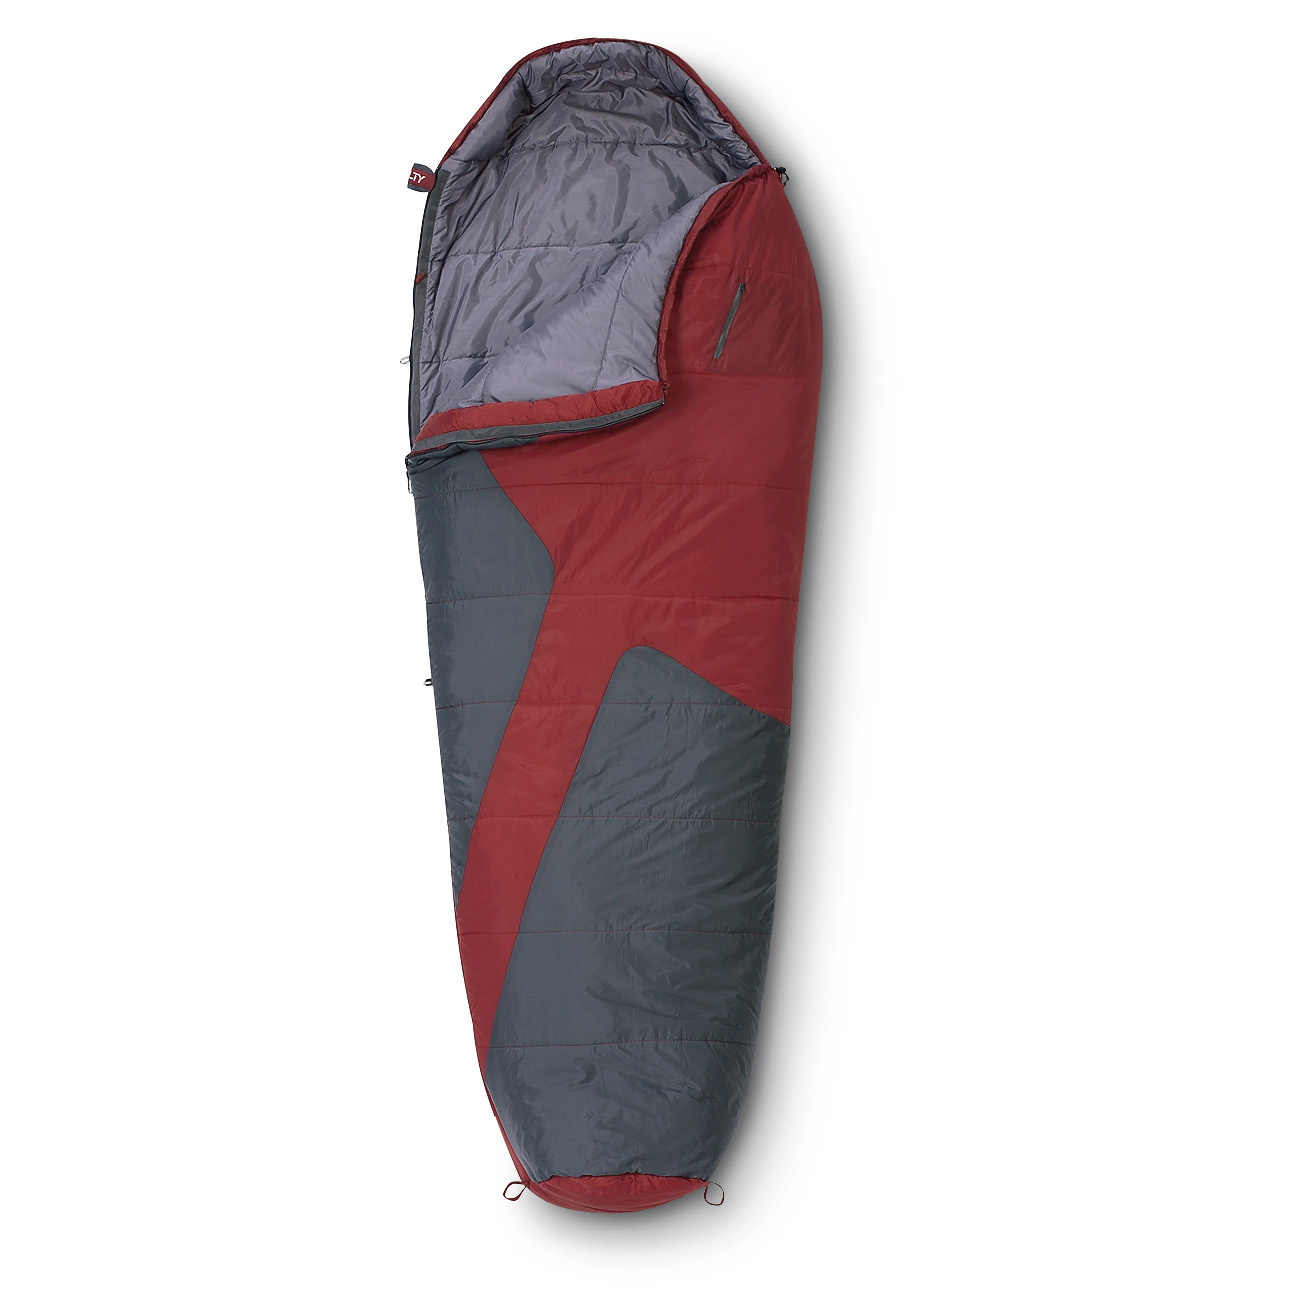 "Kelty Mistral 20 degreesF Sleeping Bag, reliable warmth at a great price! PRICED LESS! This mummy-style Sleeping Bag is loaded with features to make your next night under the stars a more comfortable one. The built-in pillow pocket keeps your pillow in place all night.The zip chest pocket keeps all your small necessities like your phone and eyeglasses close by. It's rated to 20 degreesF for warmth on those chilly fall nights. Measures 64 x 80""l., 3 lbs. 11 ozs.Good night:2-layer offset quilt construction for warmth without cold spots 2-way, locking blanket zipper Zipper draft tube with anti-snag design Internal liner loops, and sleeping pad security loops Ground level side seams for maximum warmth FatMan and Ribbon & #153 drawcords 33-oz. fill weight. Sleep well in your new Mistral Sleeping Bag! Act ONLINE Now! - $79.99"